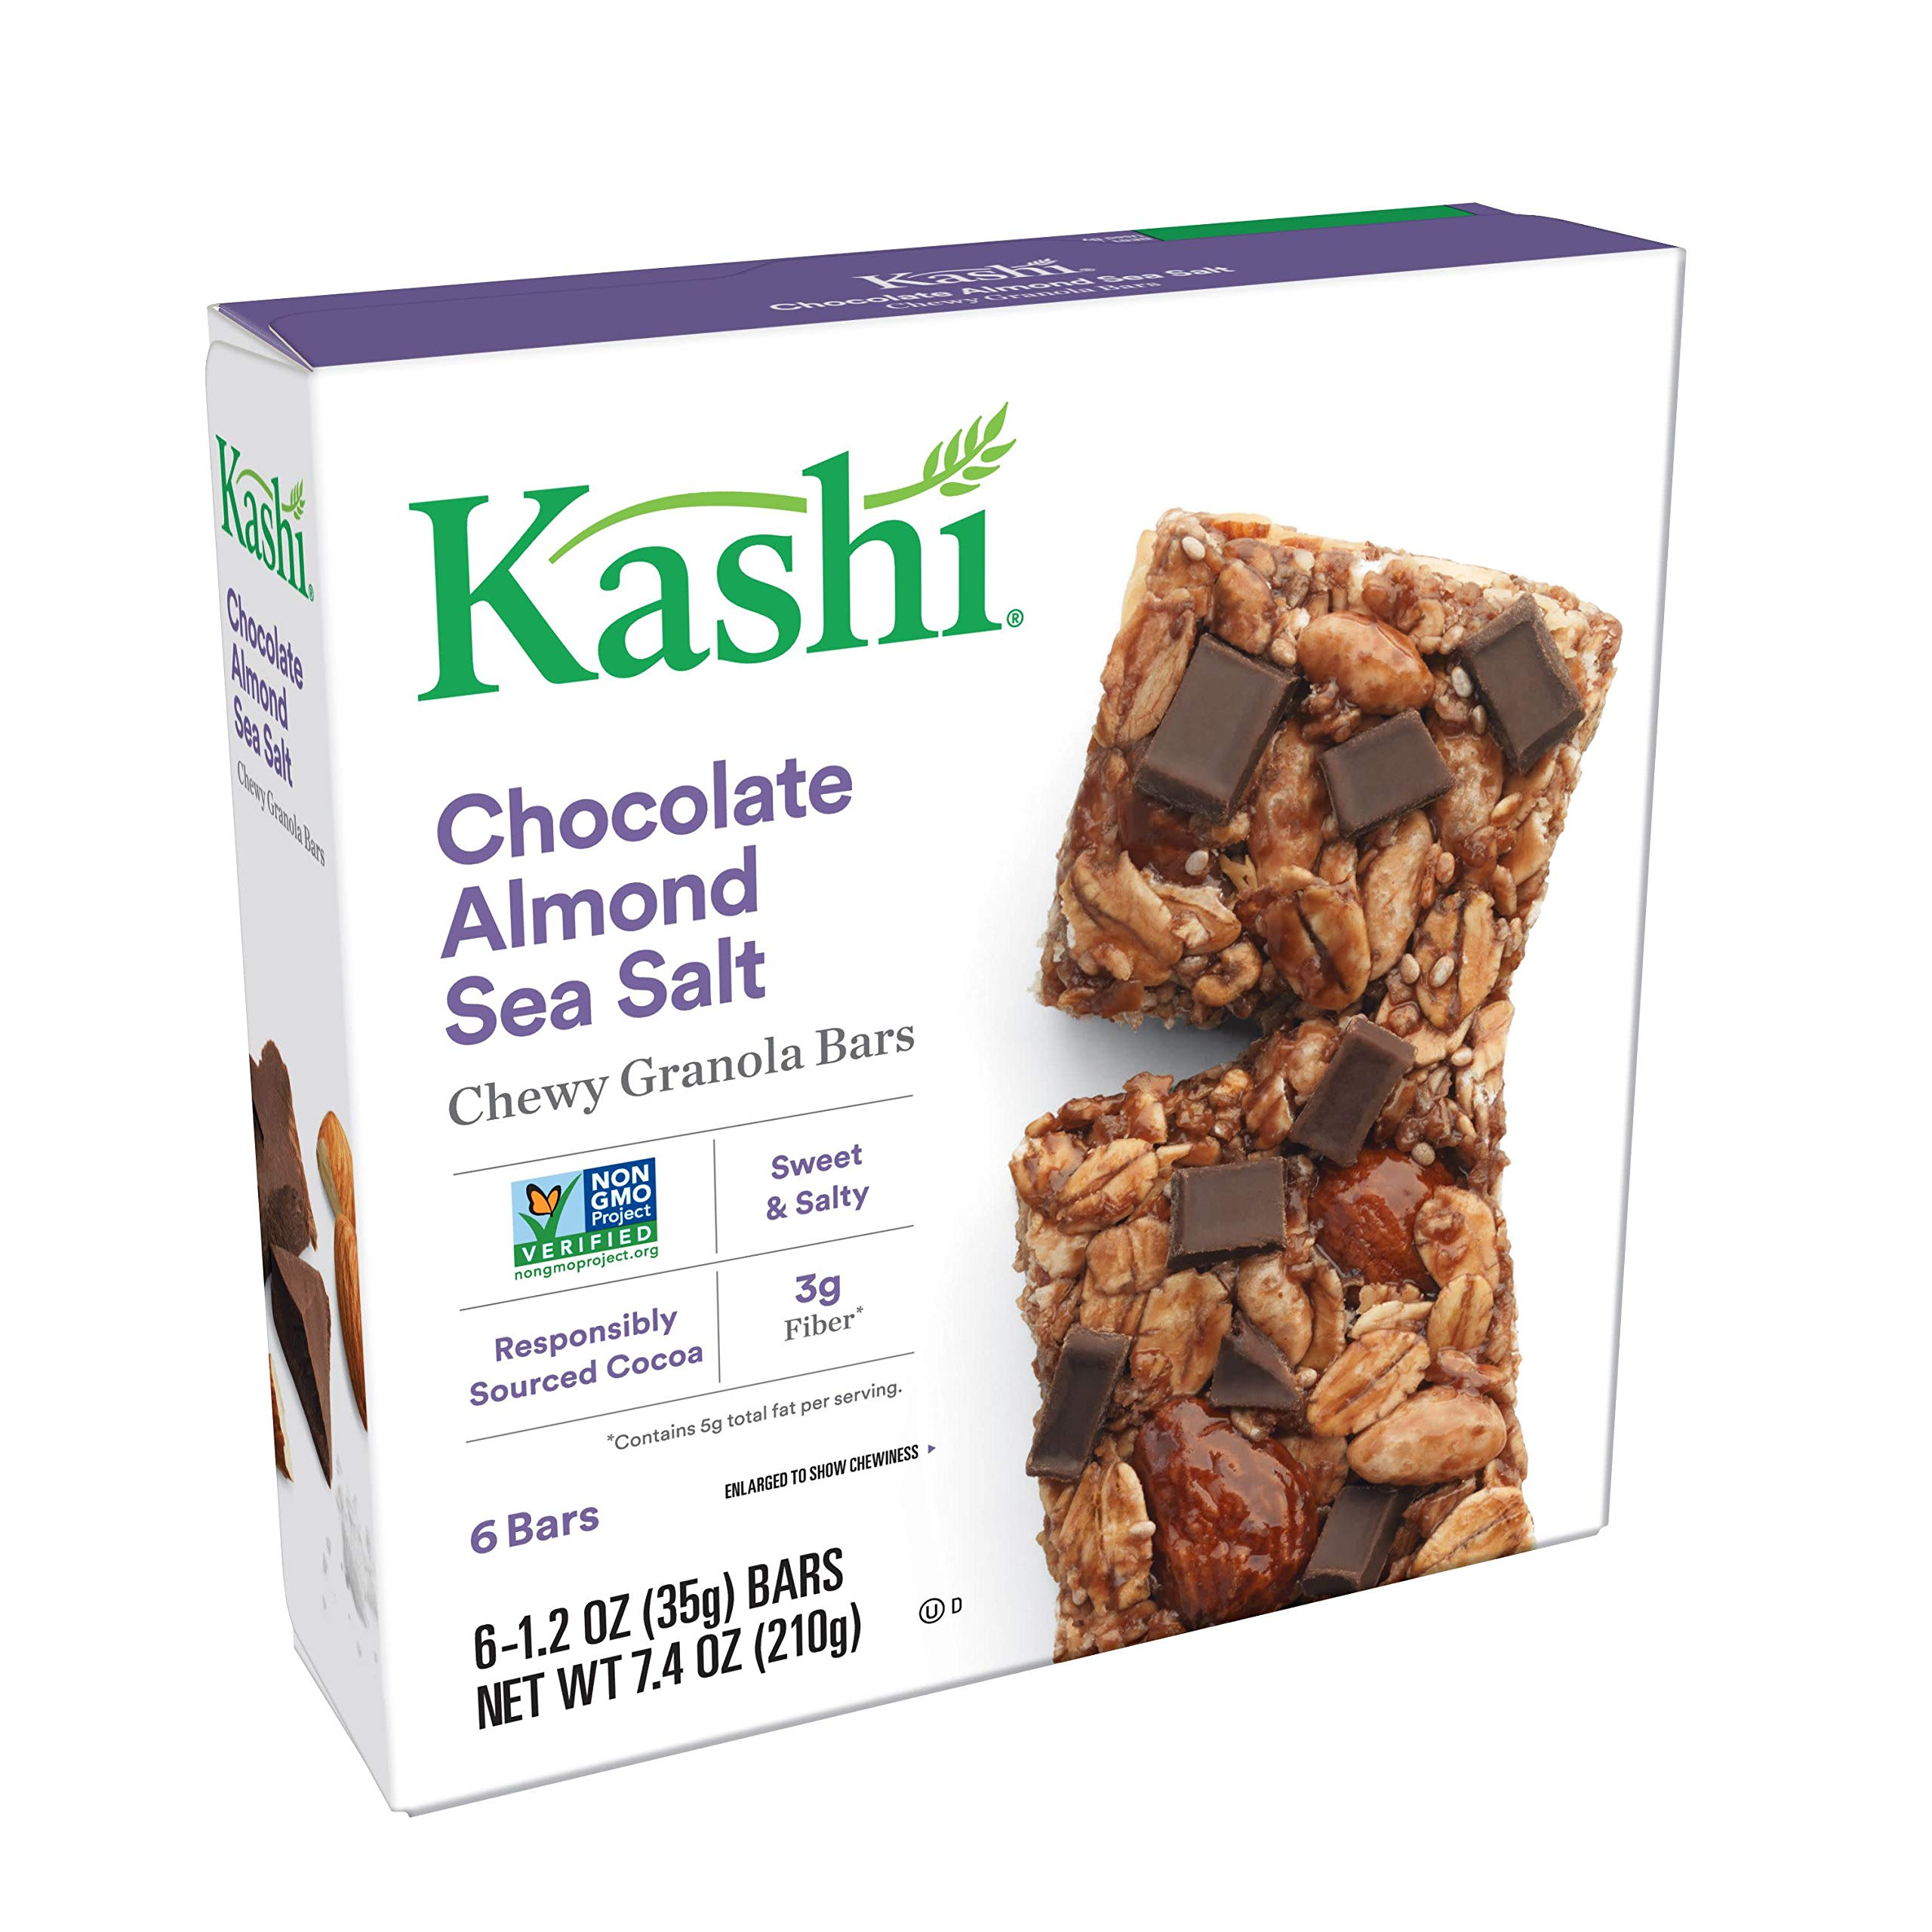 Kashi, Chewy Granola Bars, Chocolate Almond Sea Salt, Non-GMO Project Verified, 7.4 oz (6 Count)(Pack of 8) by Kashi (Image #1)